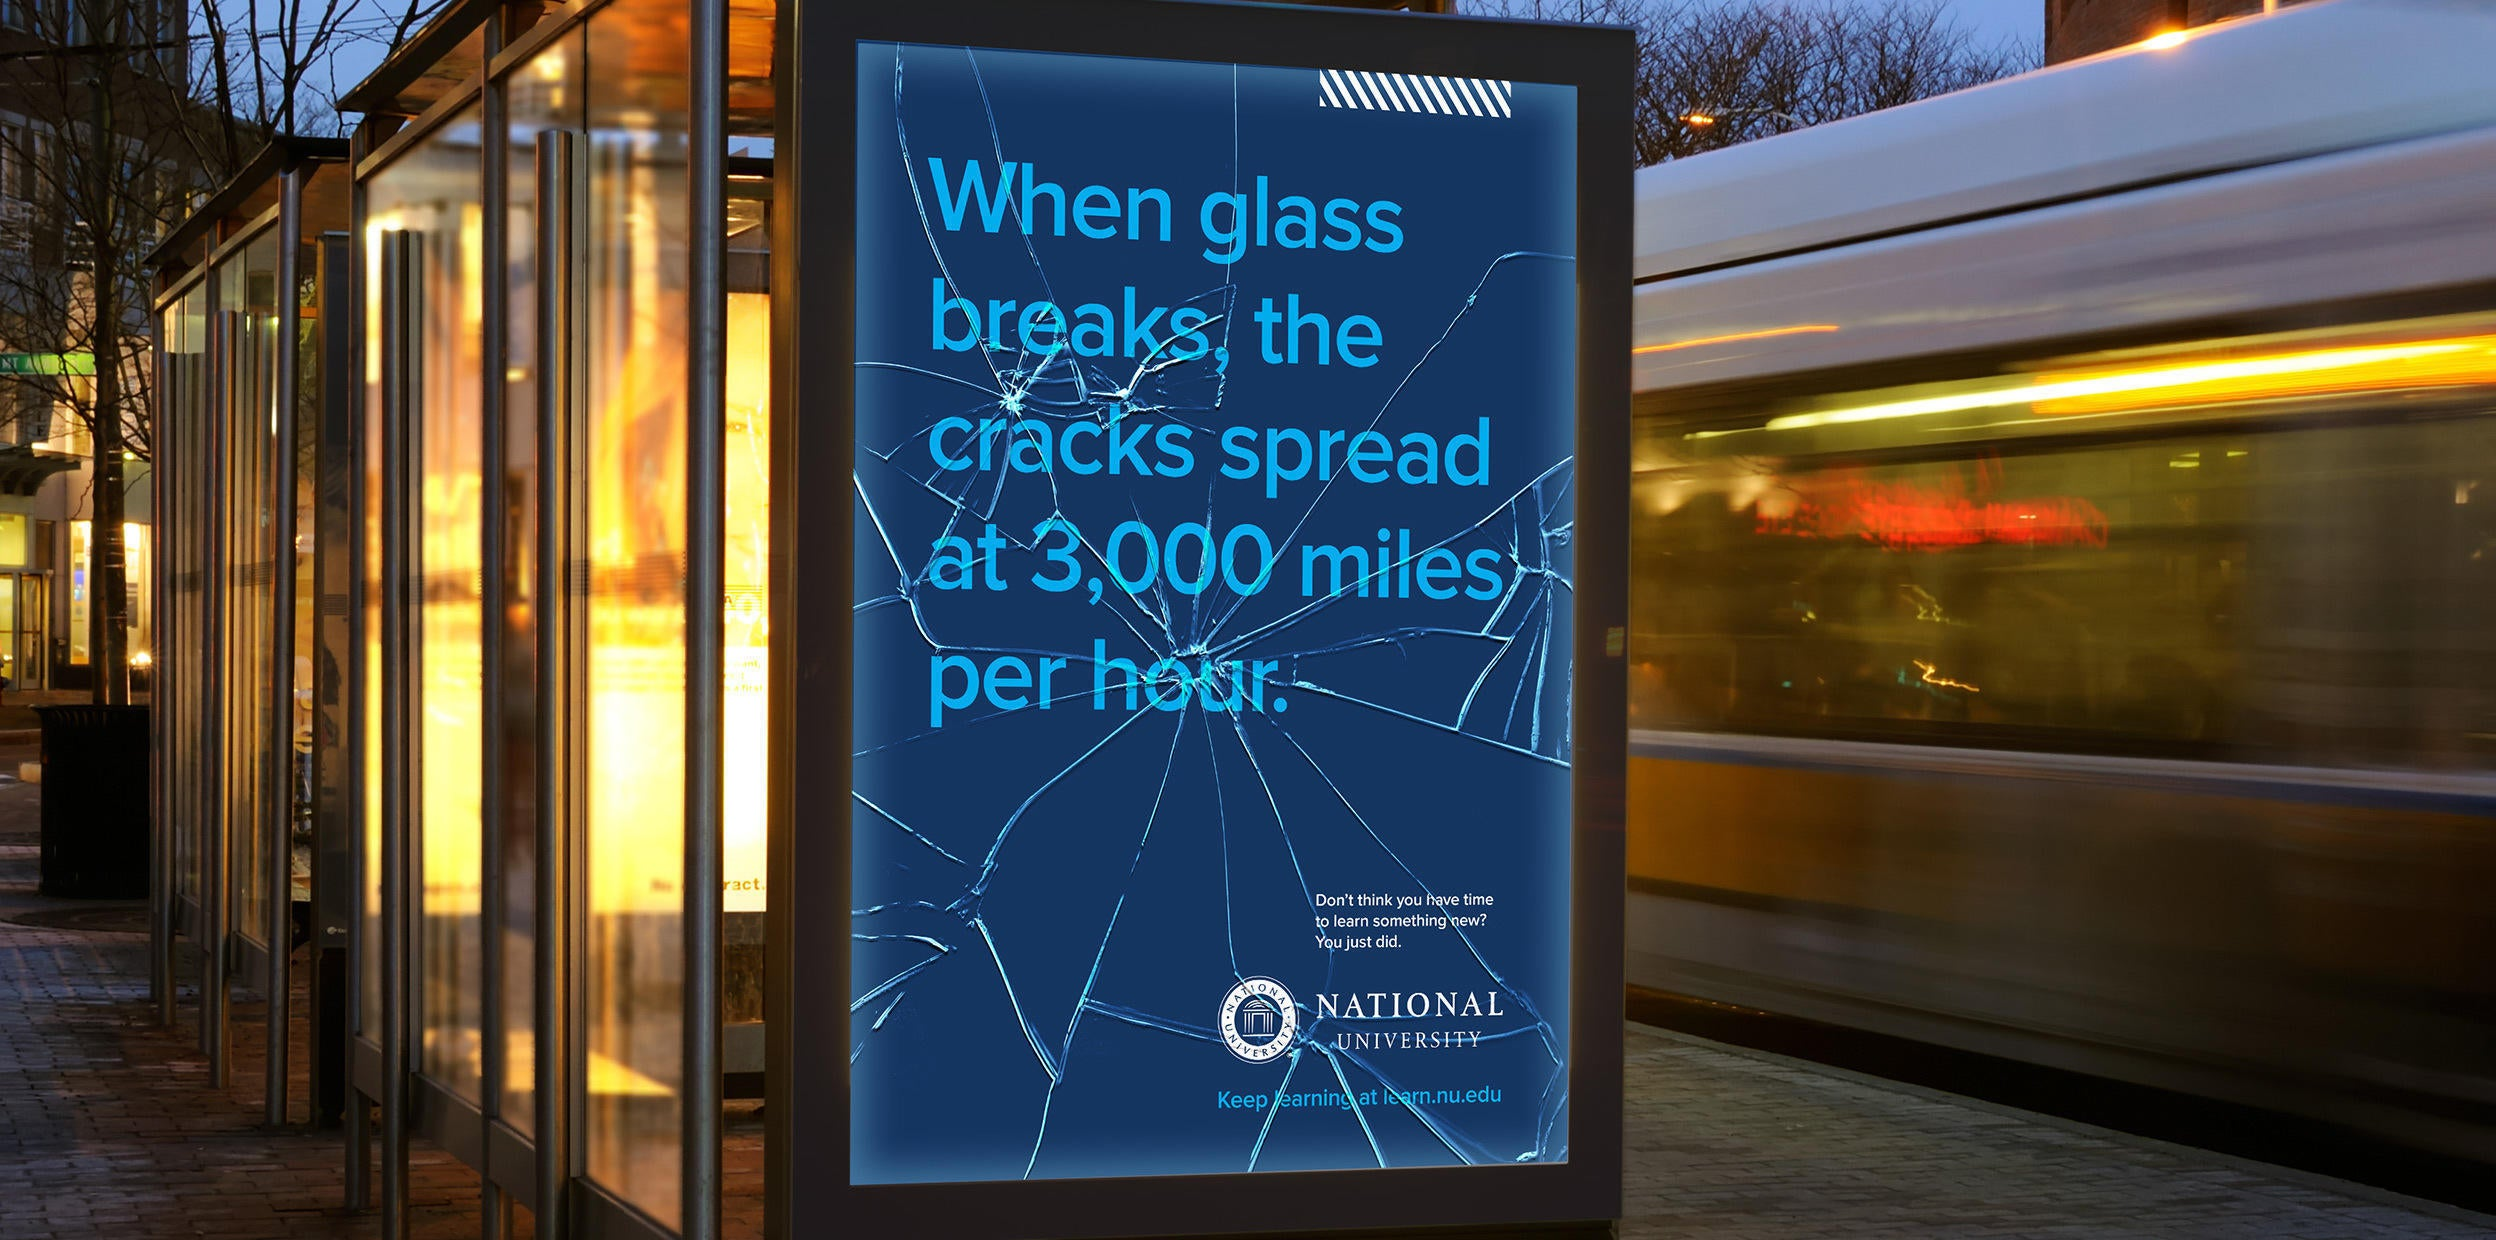 When glass breaks the cracks spread at 200 miles per hour